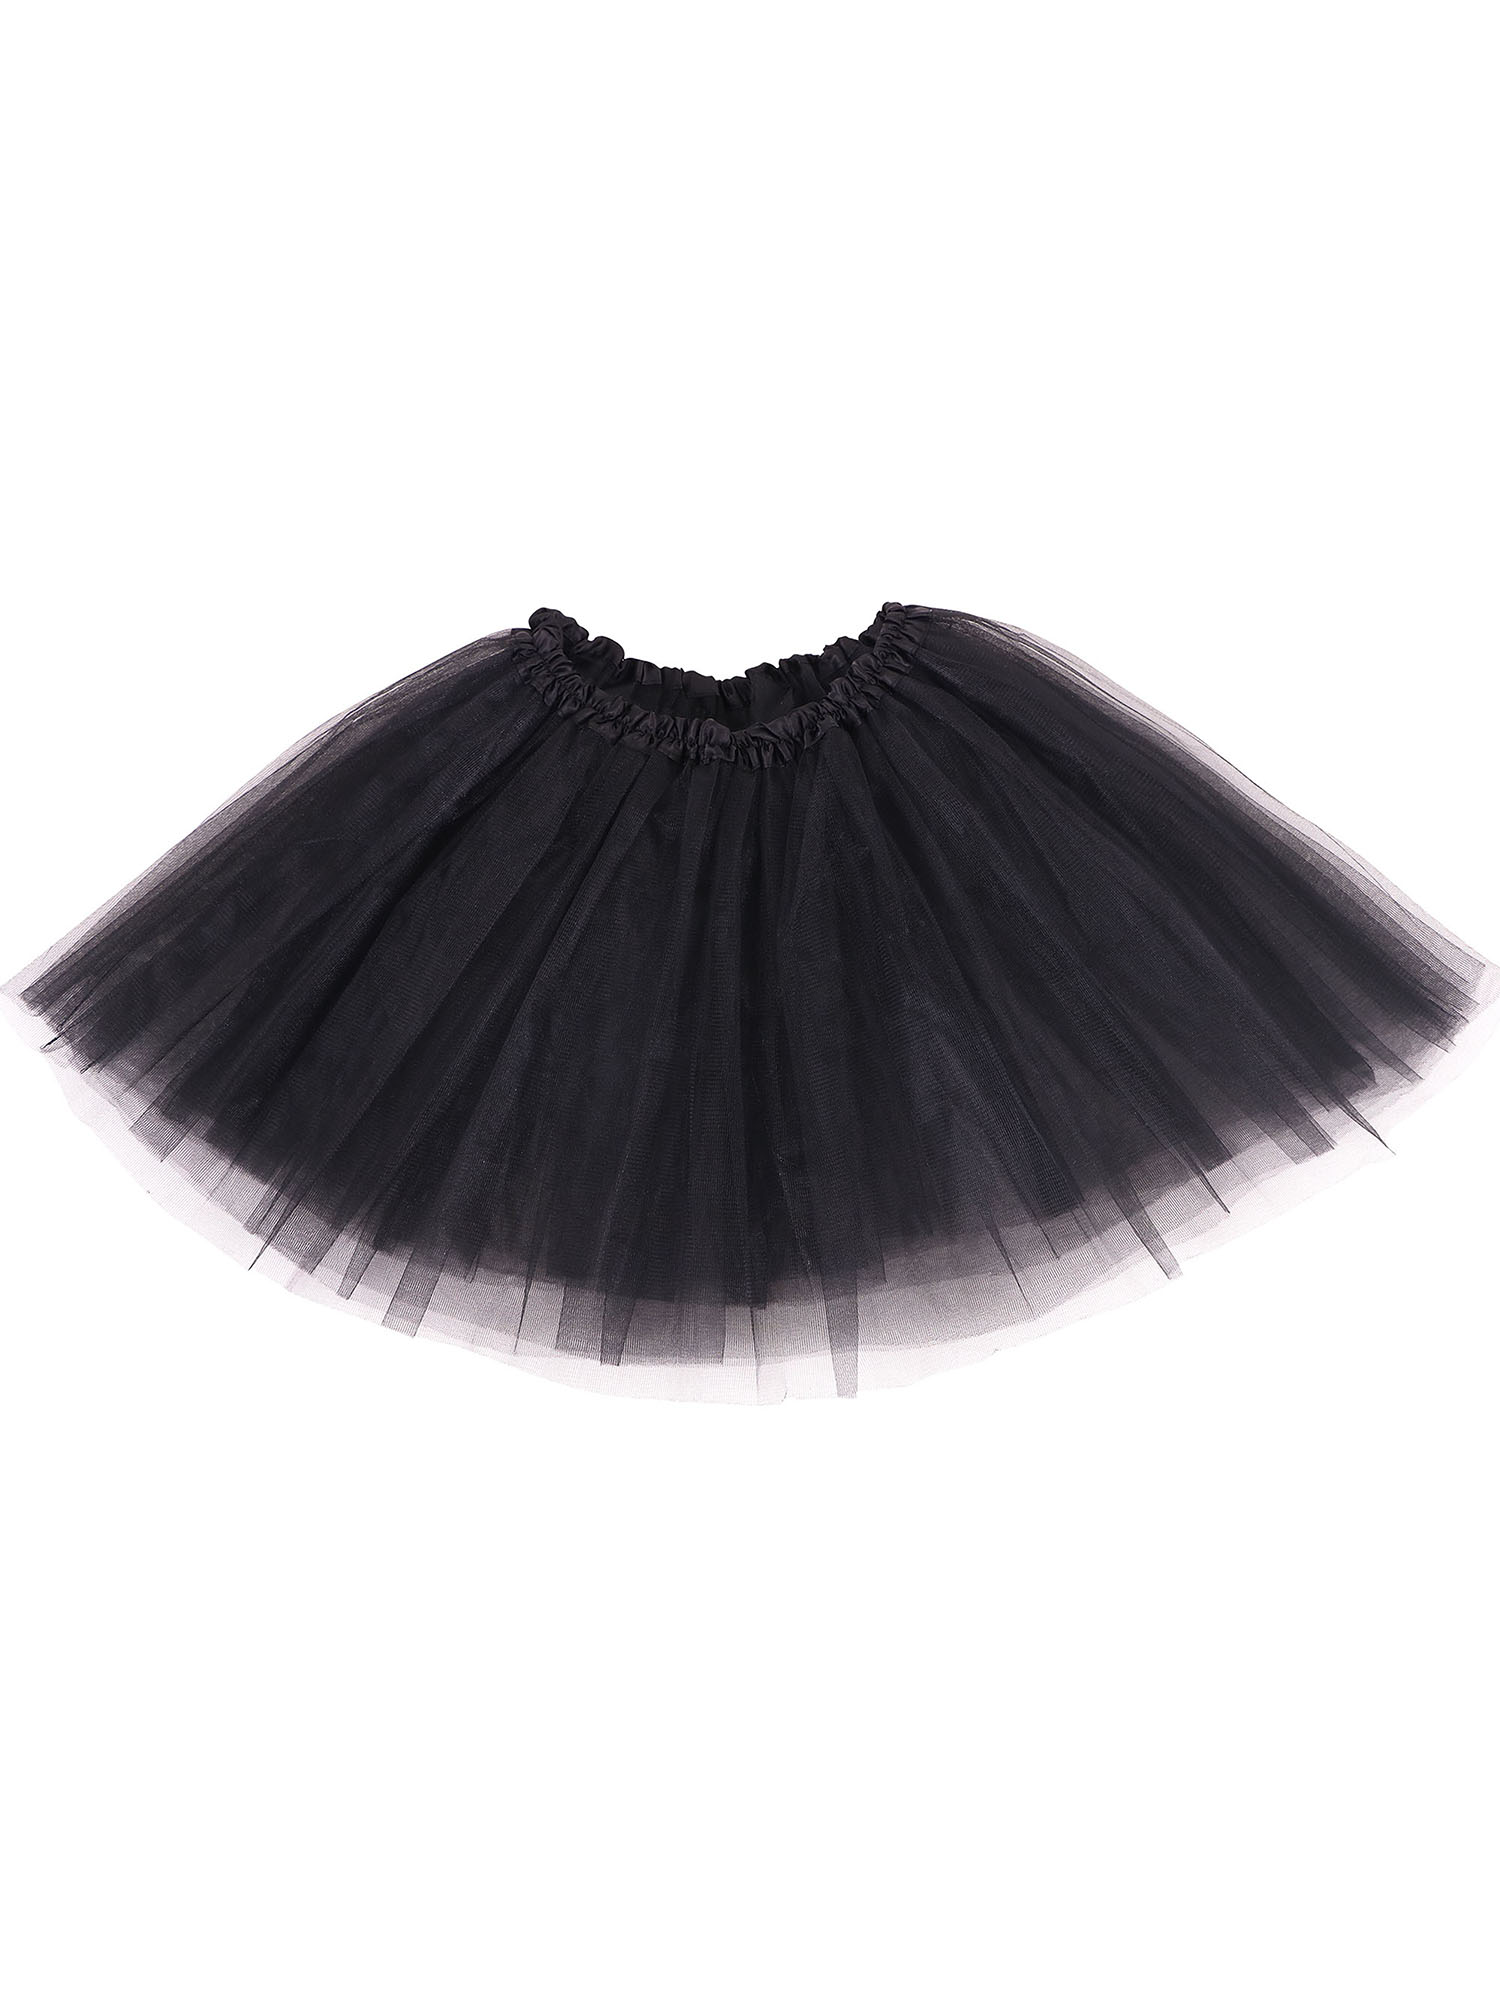 women's 3-layered Ballet Tutu Skirt, Tulle Fibers &Classic Elastic, Black